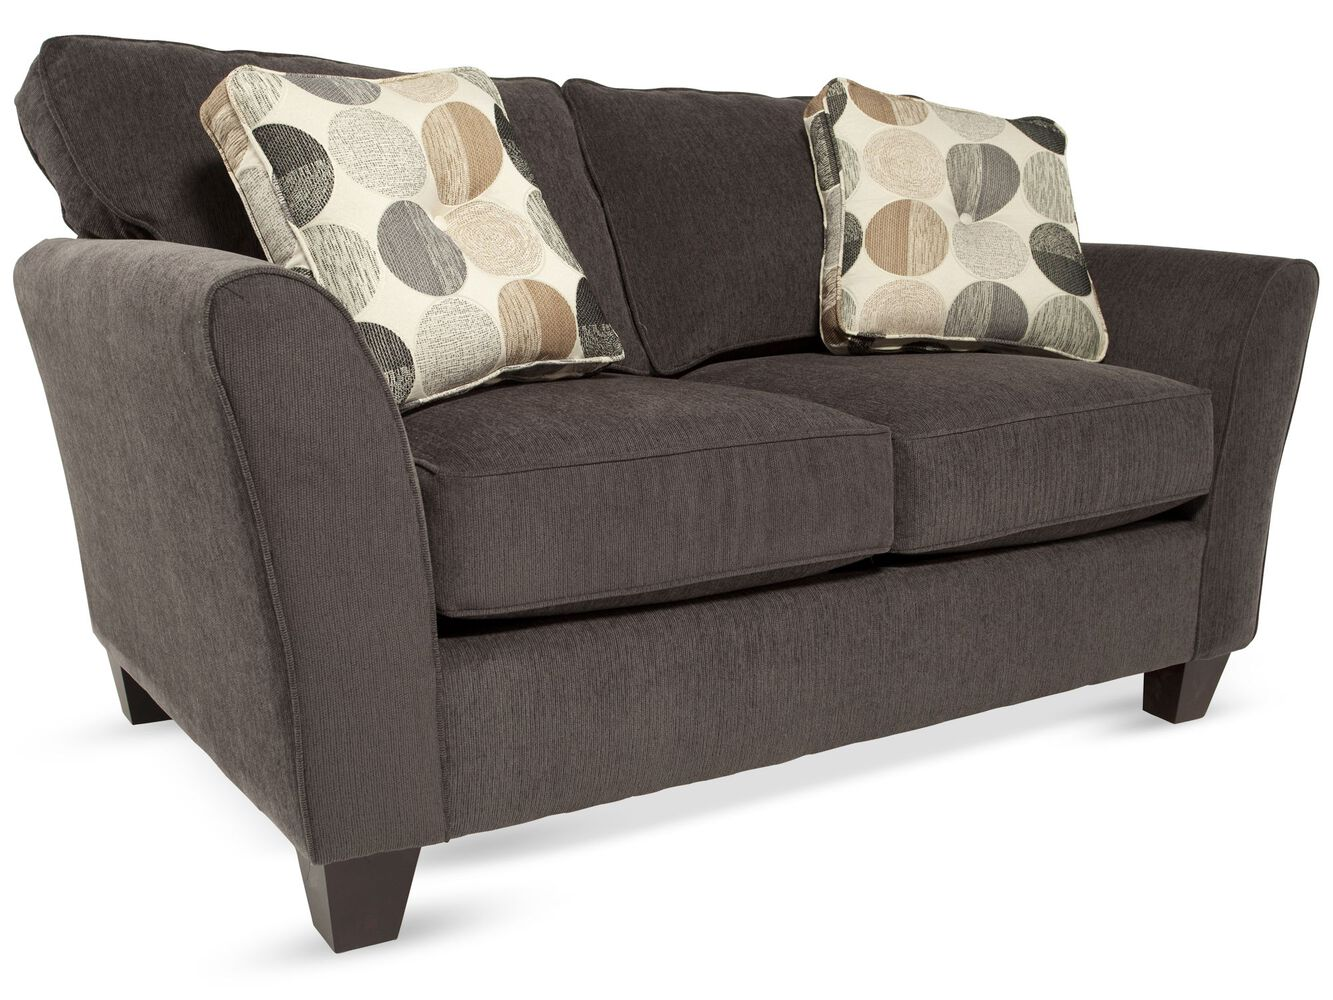 designing wondrous contemporary back curved livingroom design loveseats inspiring loveseat and pinterest interior modern home ideas sofas sofa